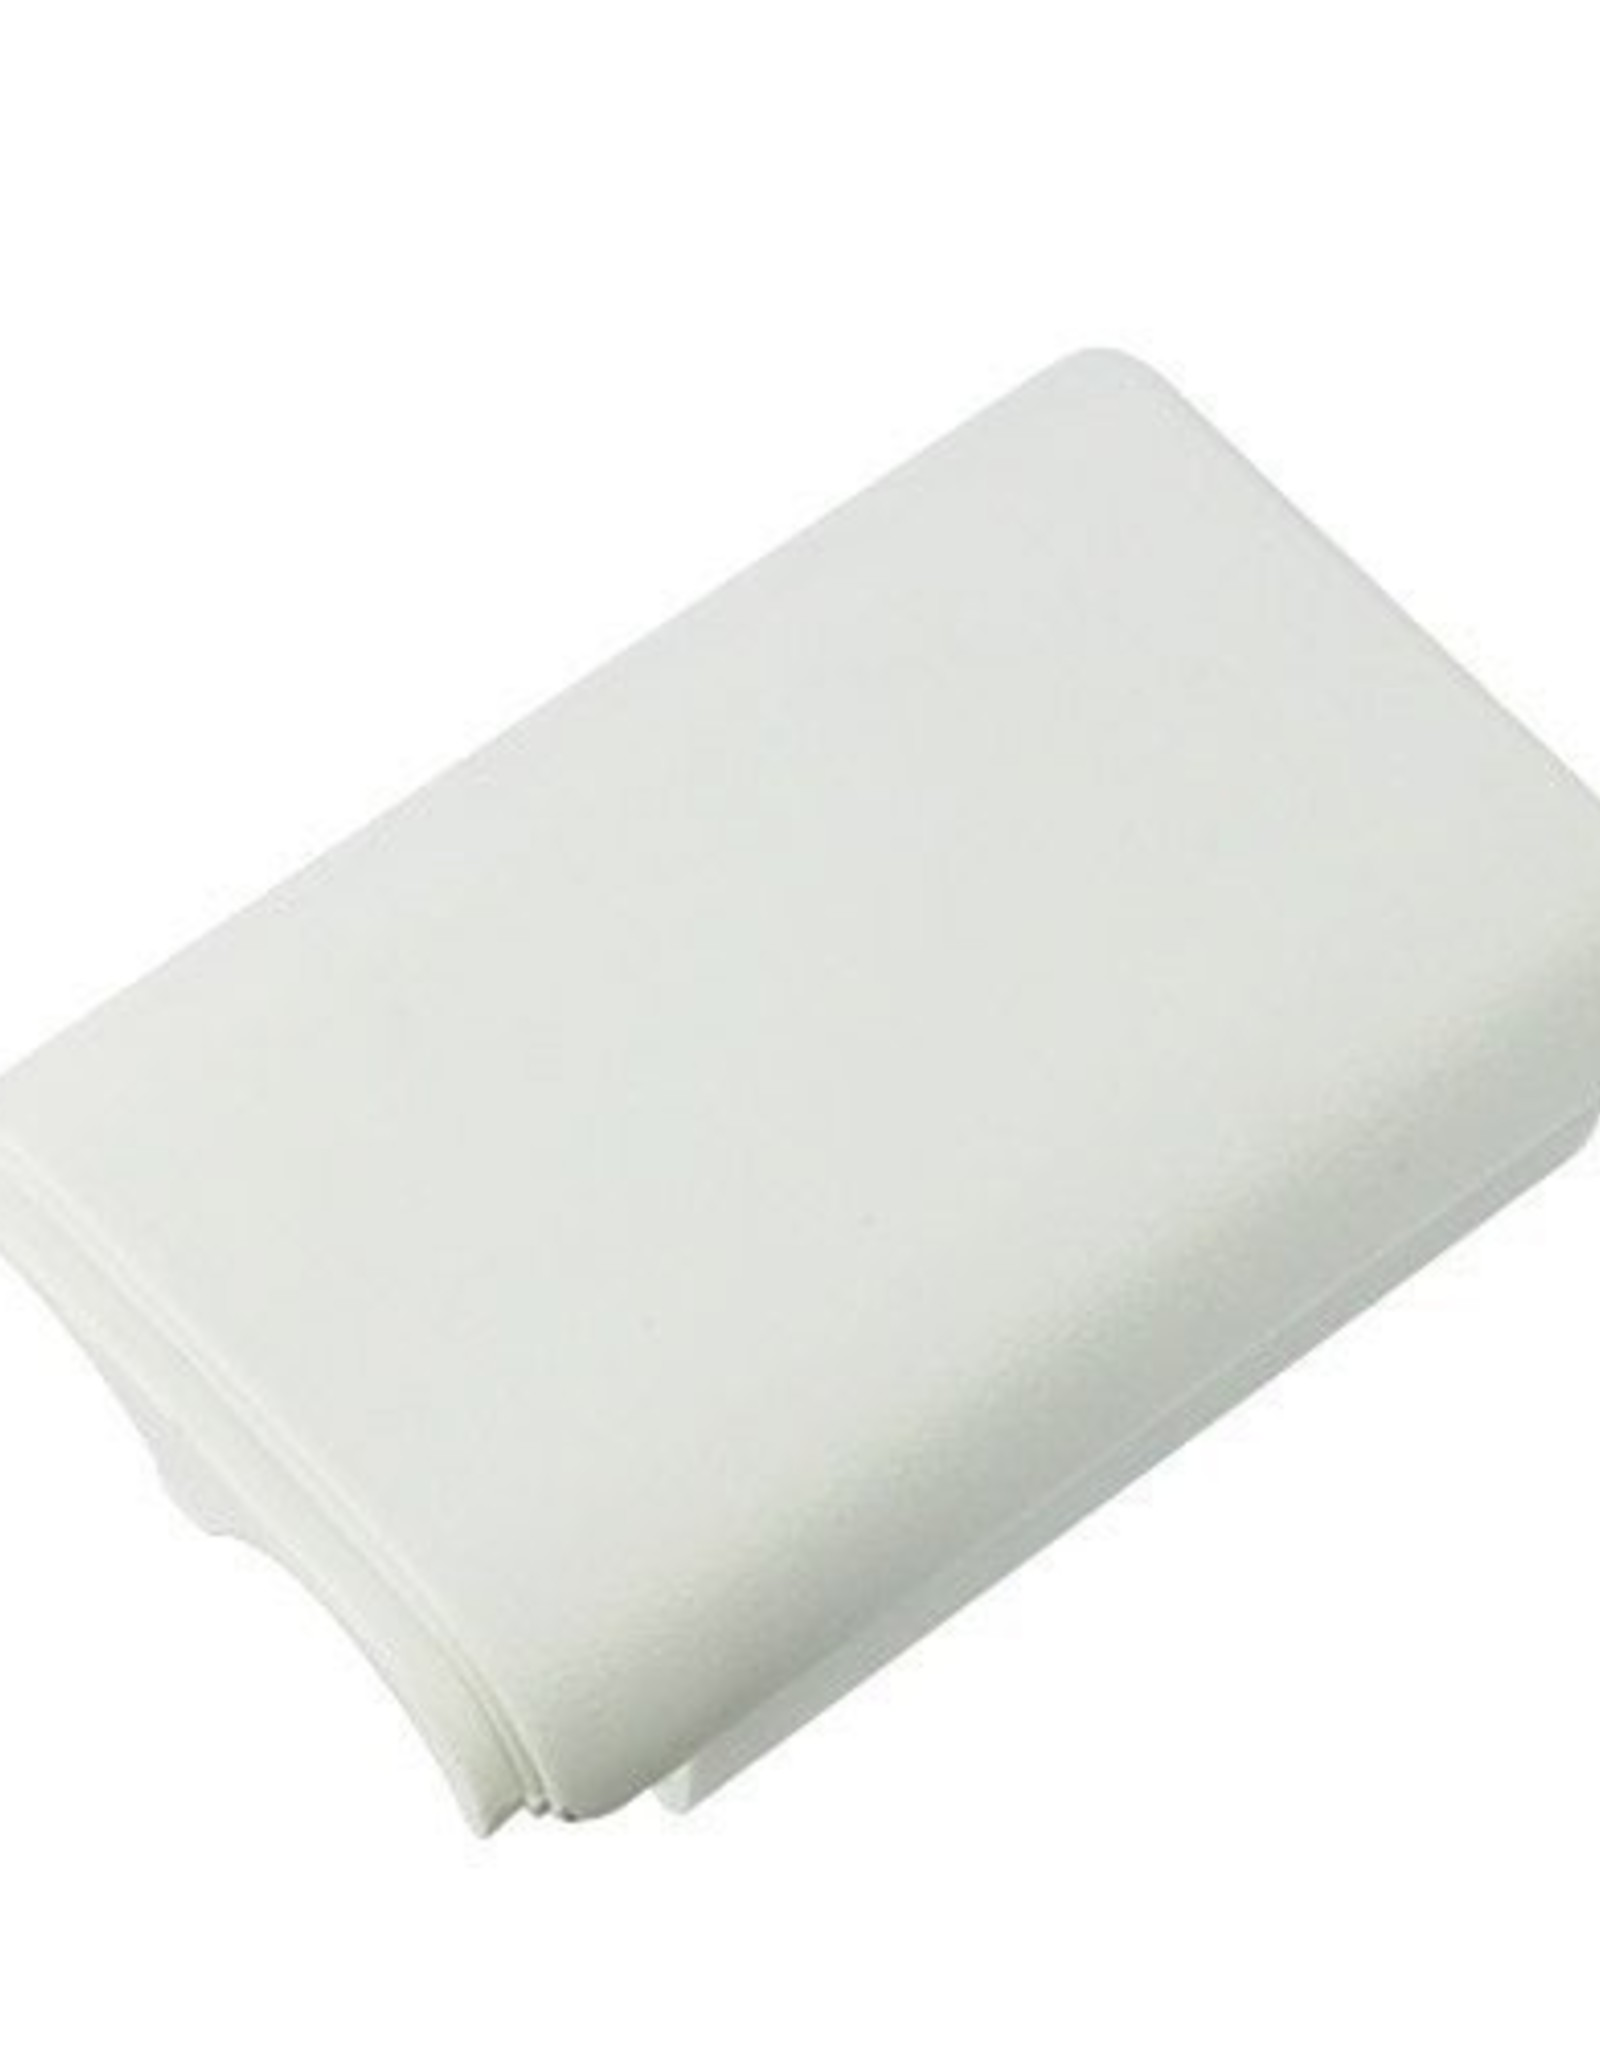 Xbox 360 360 Battery Cover (White)